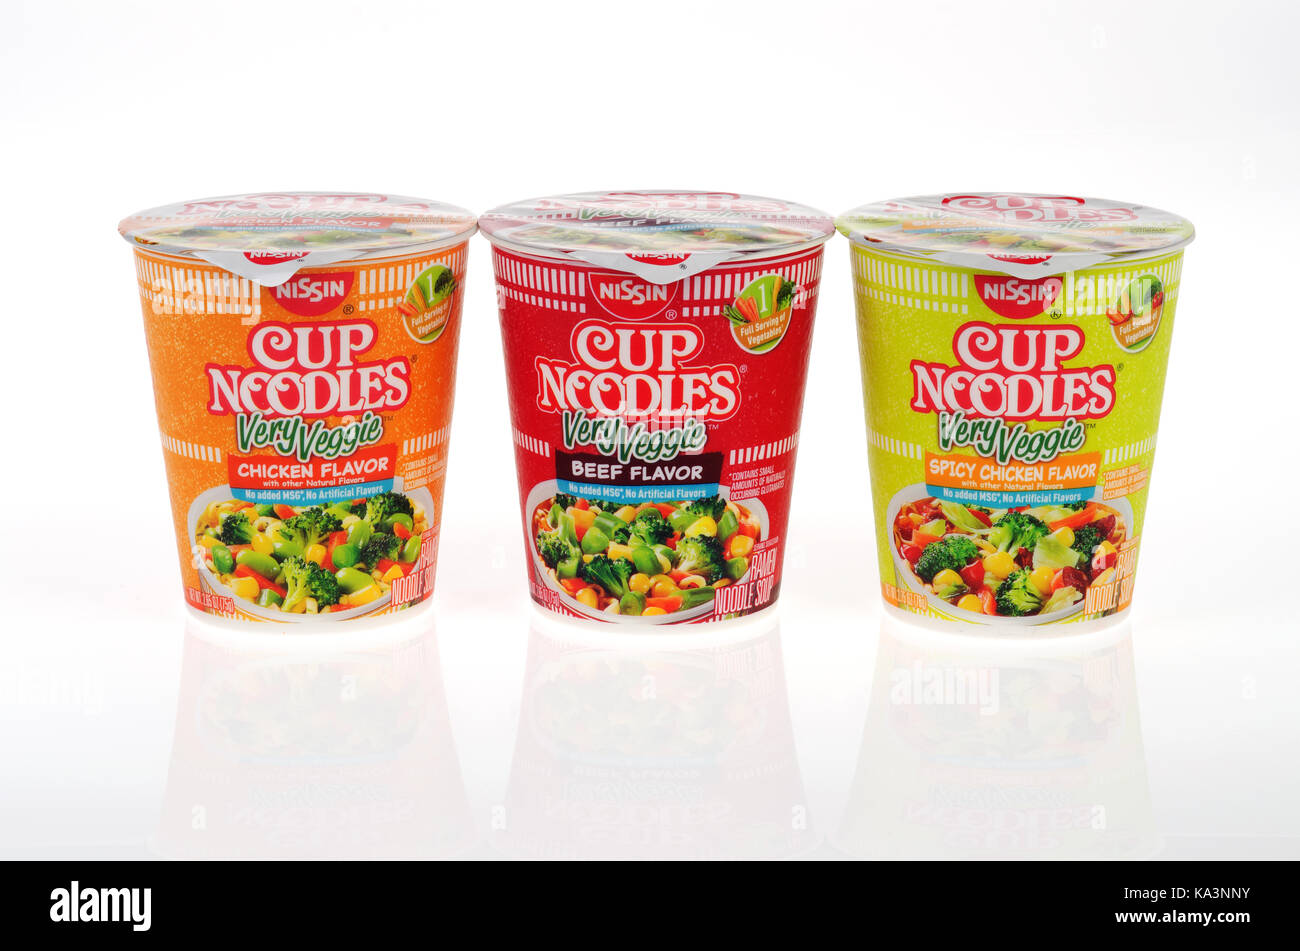 Variety of Nissin Cup of Noodles Very Veggie flavors chicken, spicy chicken and beef containers on white background. - Stock Image